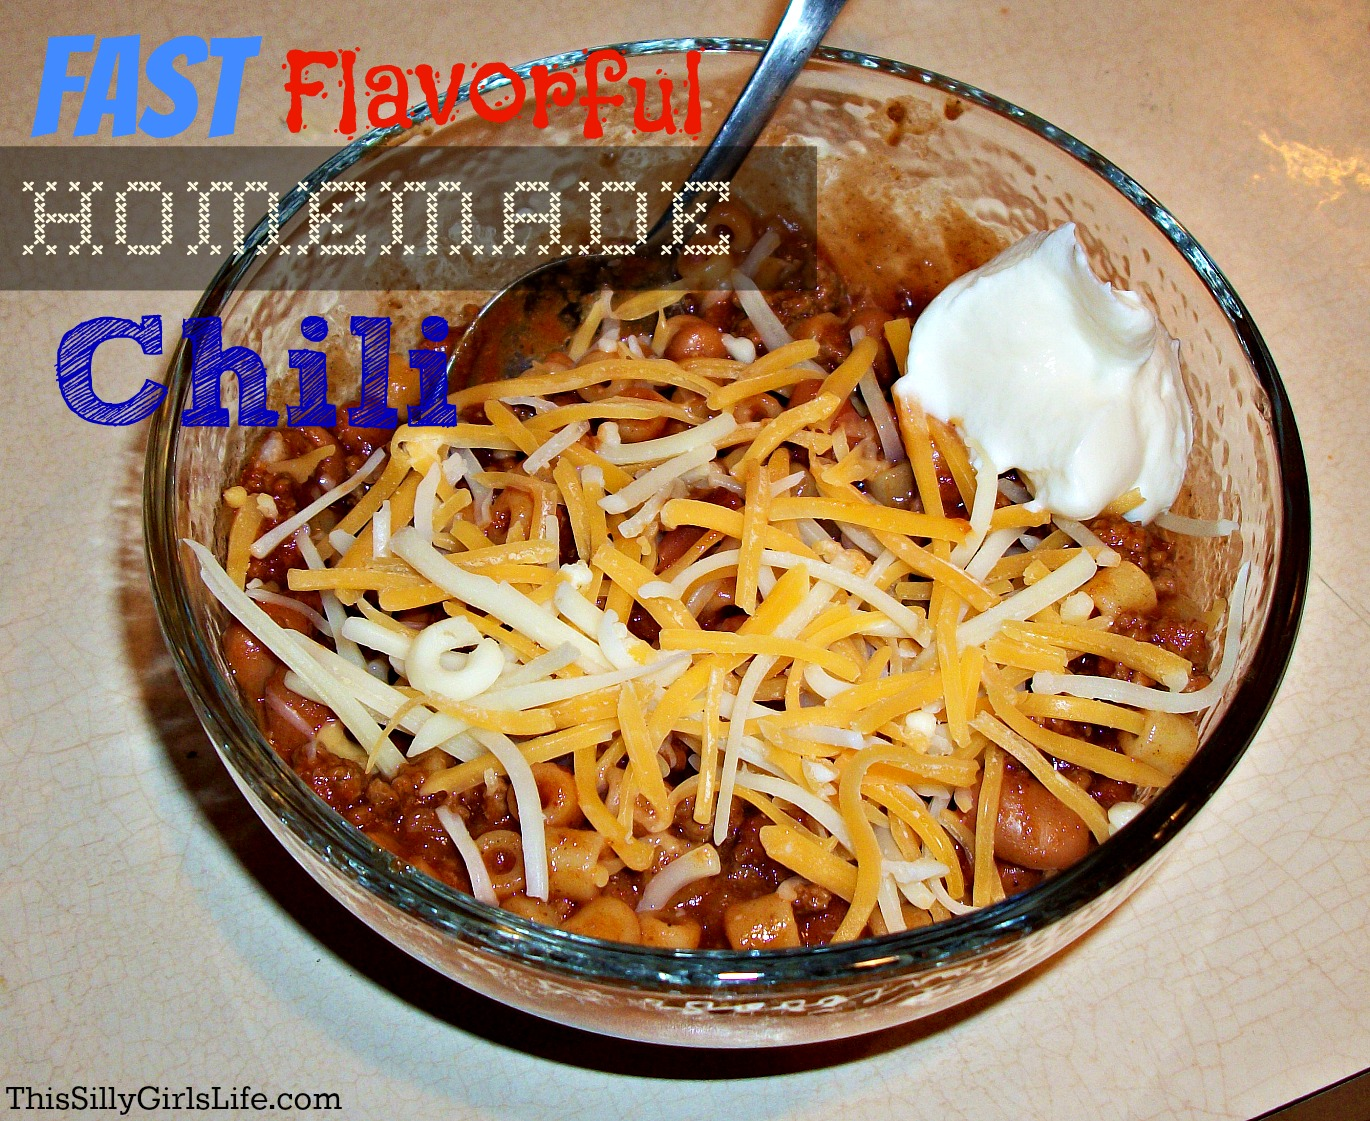 Fast, Flavorful, Homemade Chili